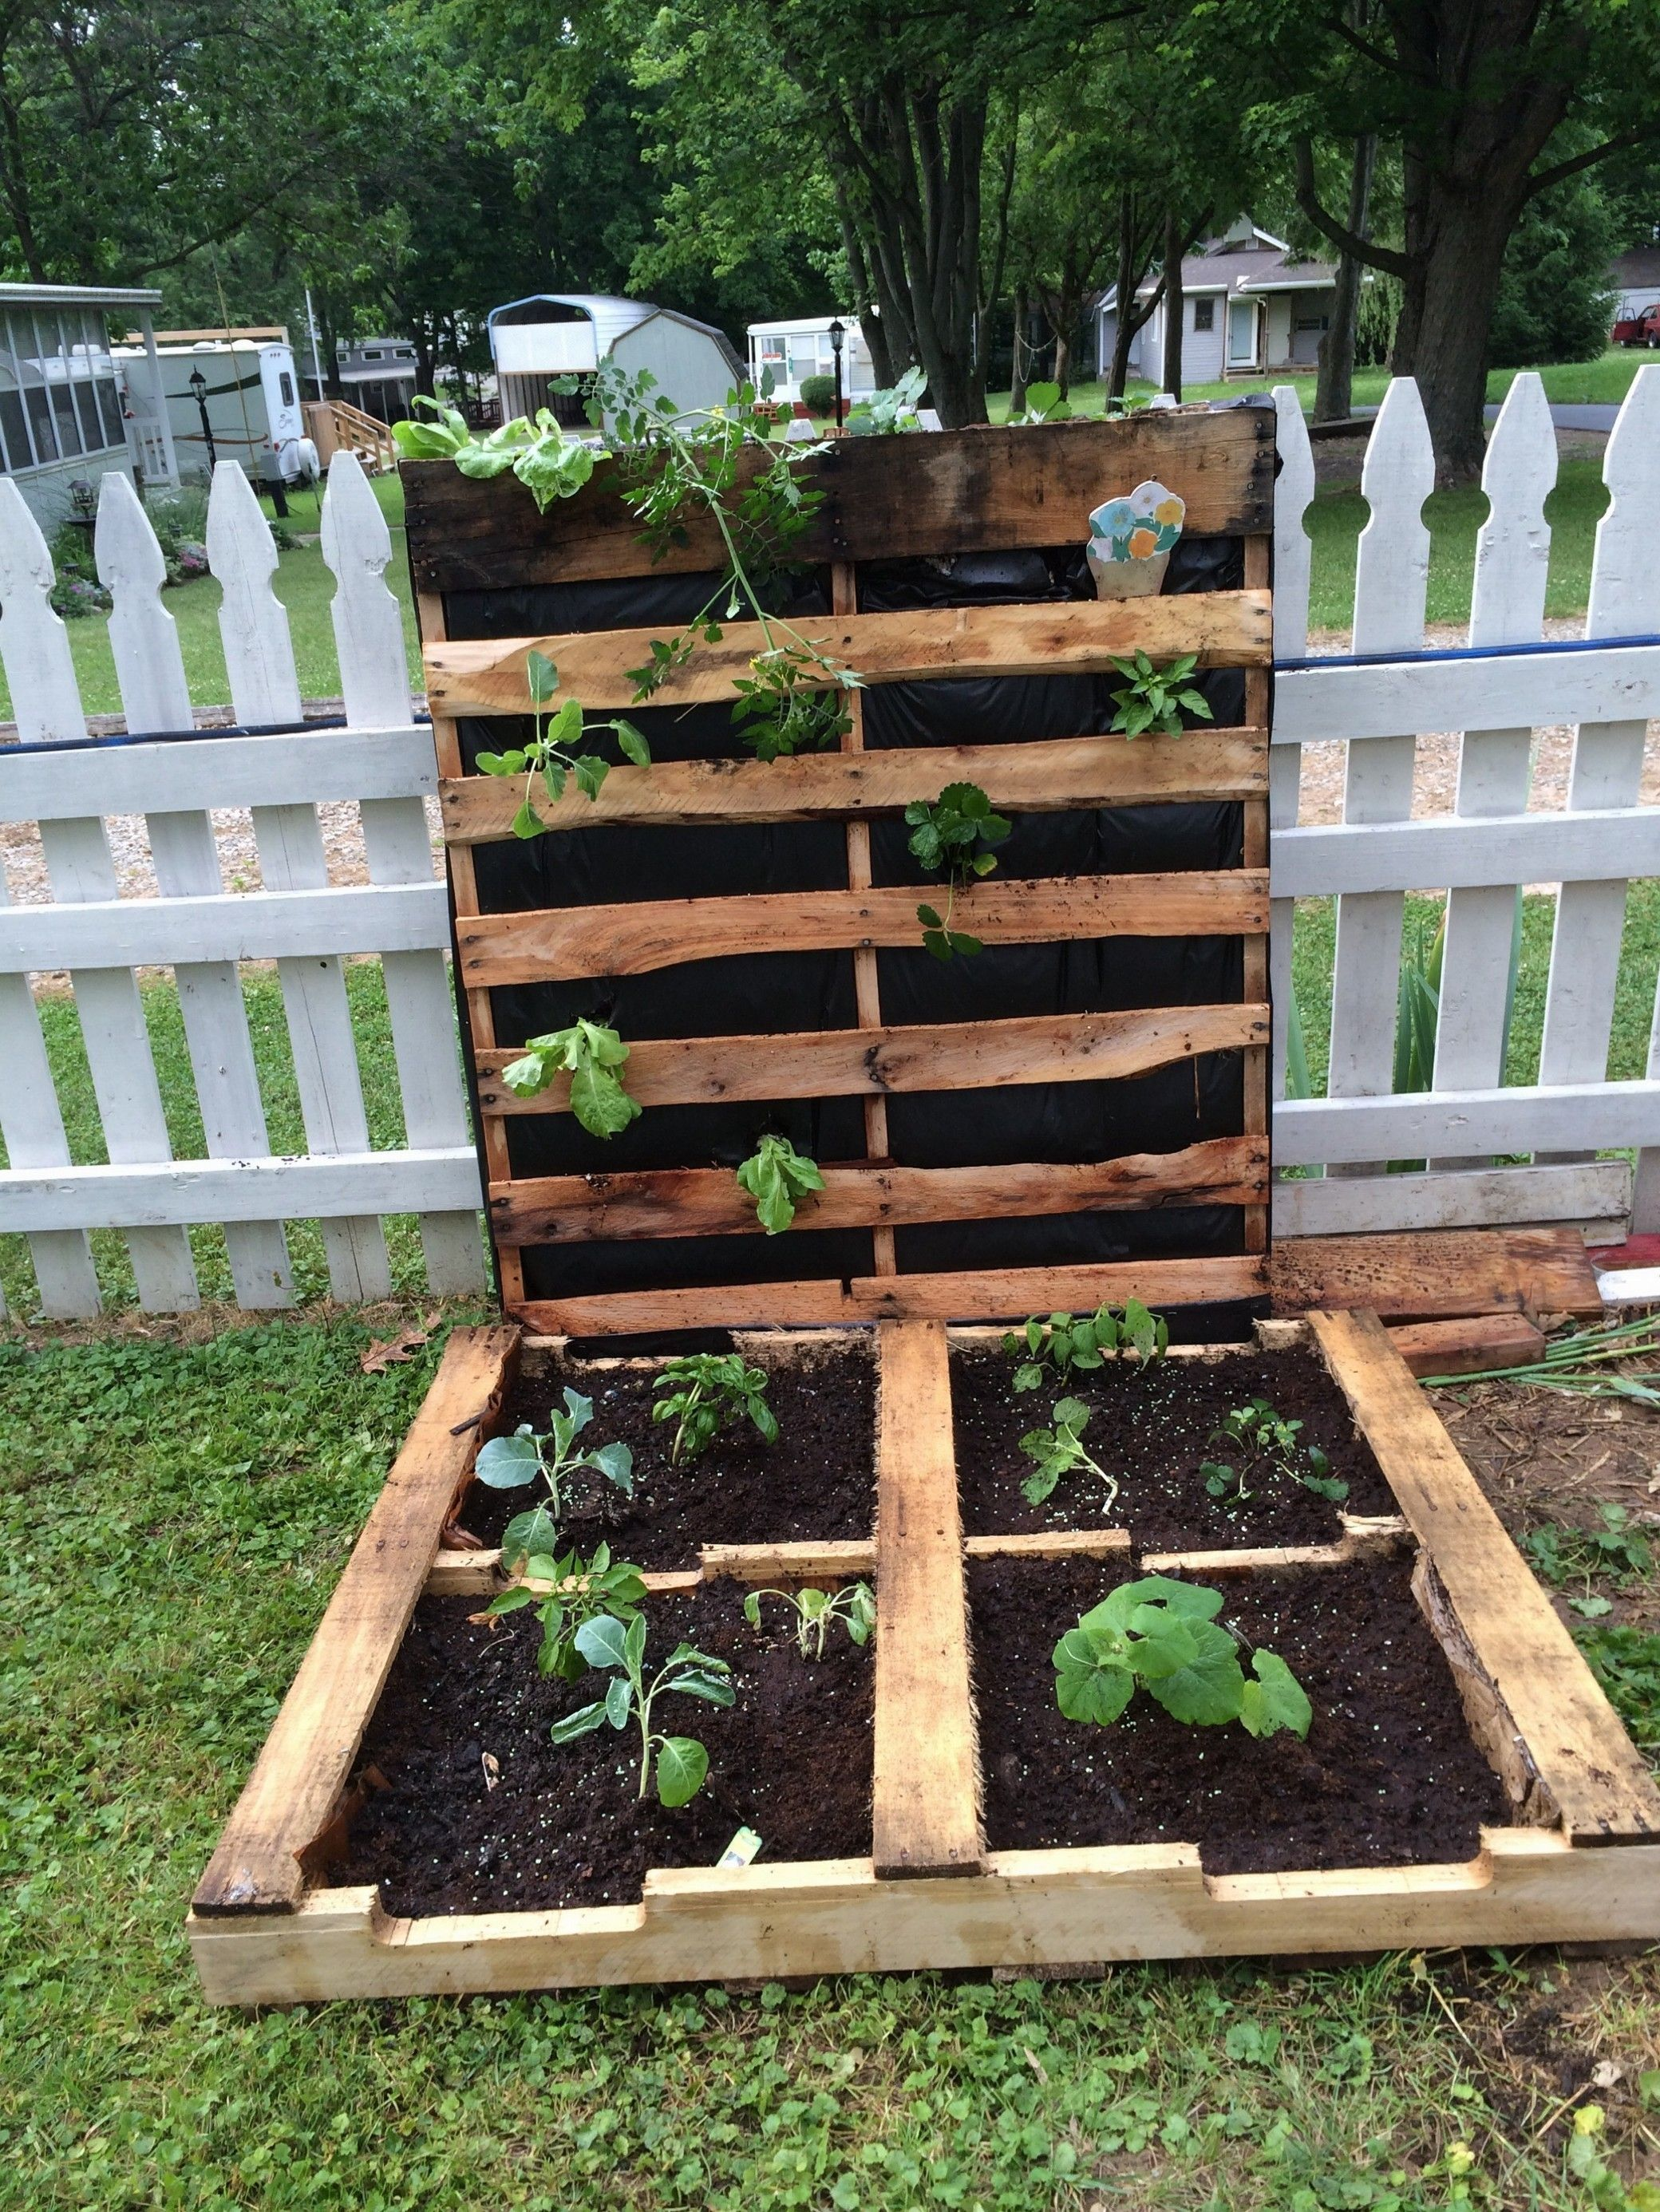 Small Crop Of Pallet Gardens Images